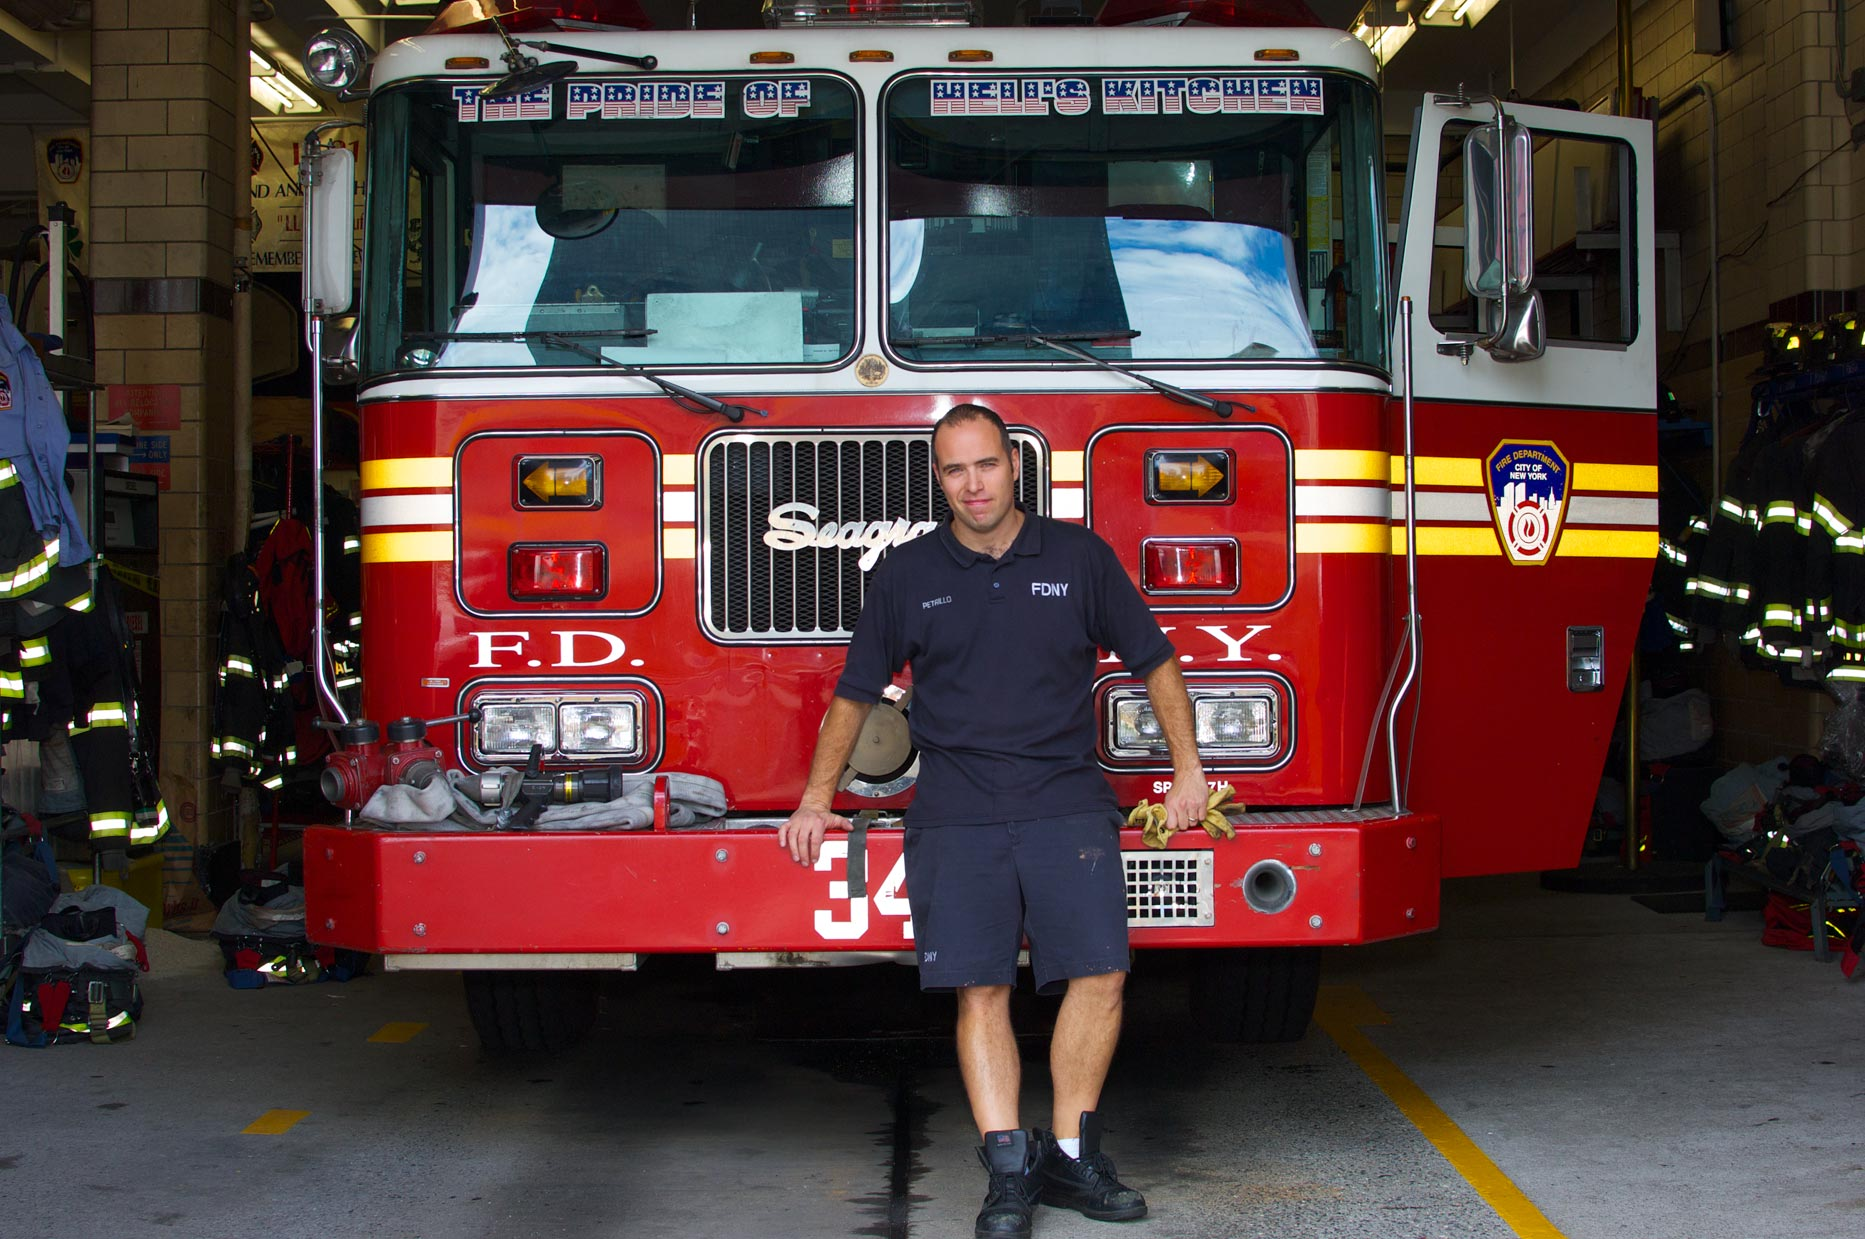 Patrick_FDNY_Fireman_In_Front_of_Fire_Engine in Manhattan.jpg